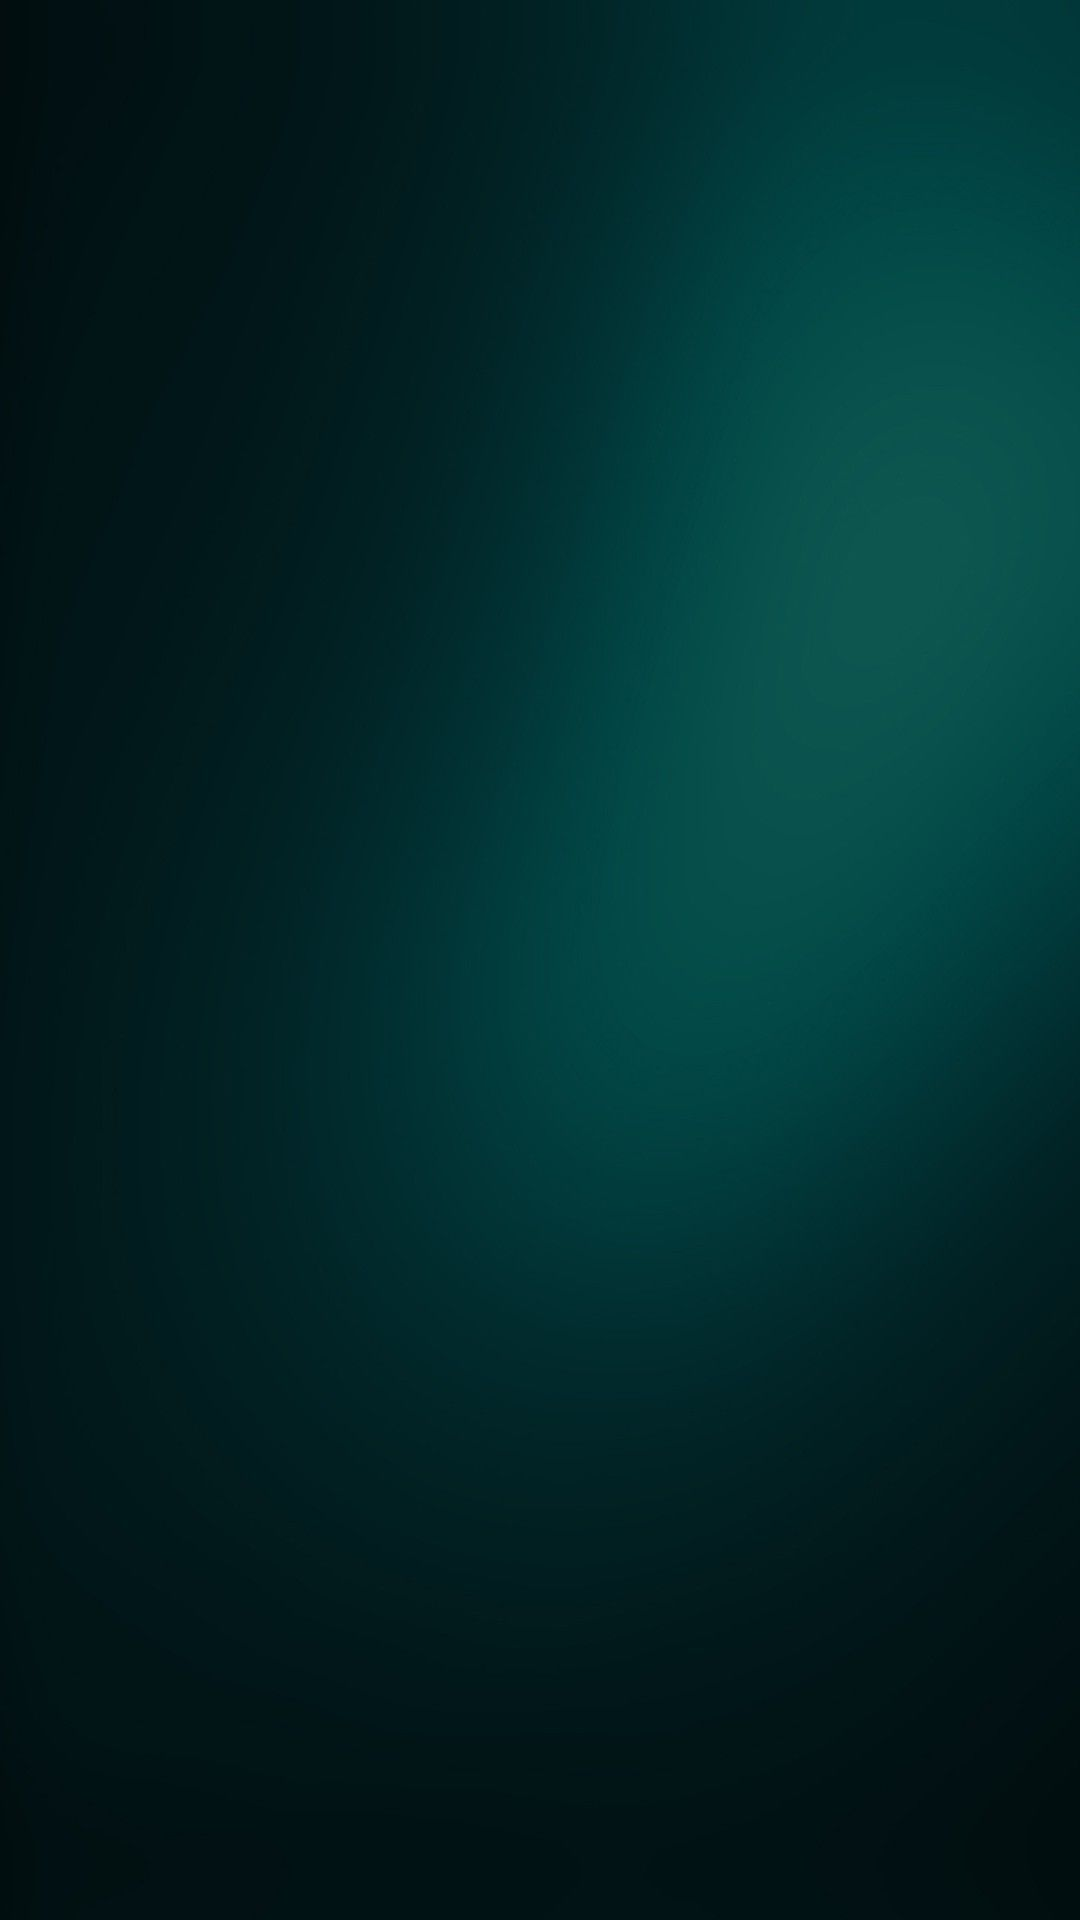 green blue wallpaper  Dark green iPhone wallpapers | Blue Wallpaper! | Pinterest ...